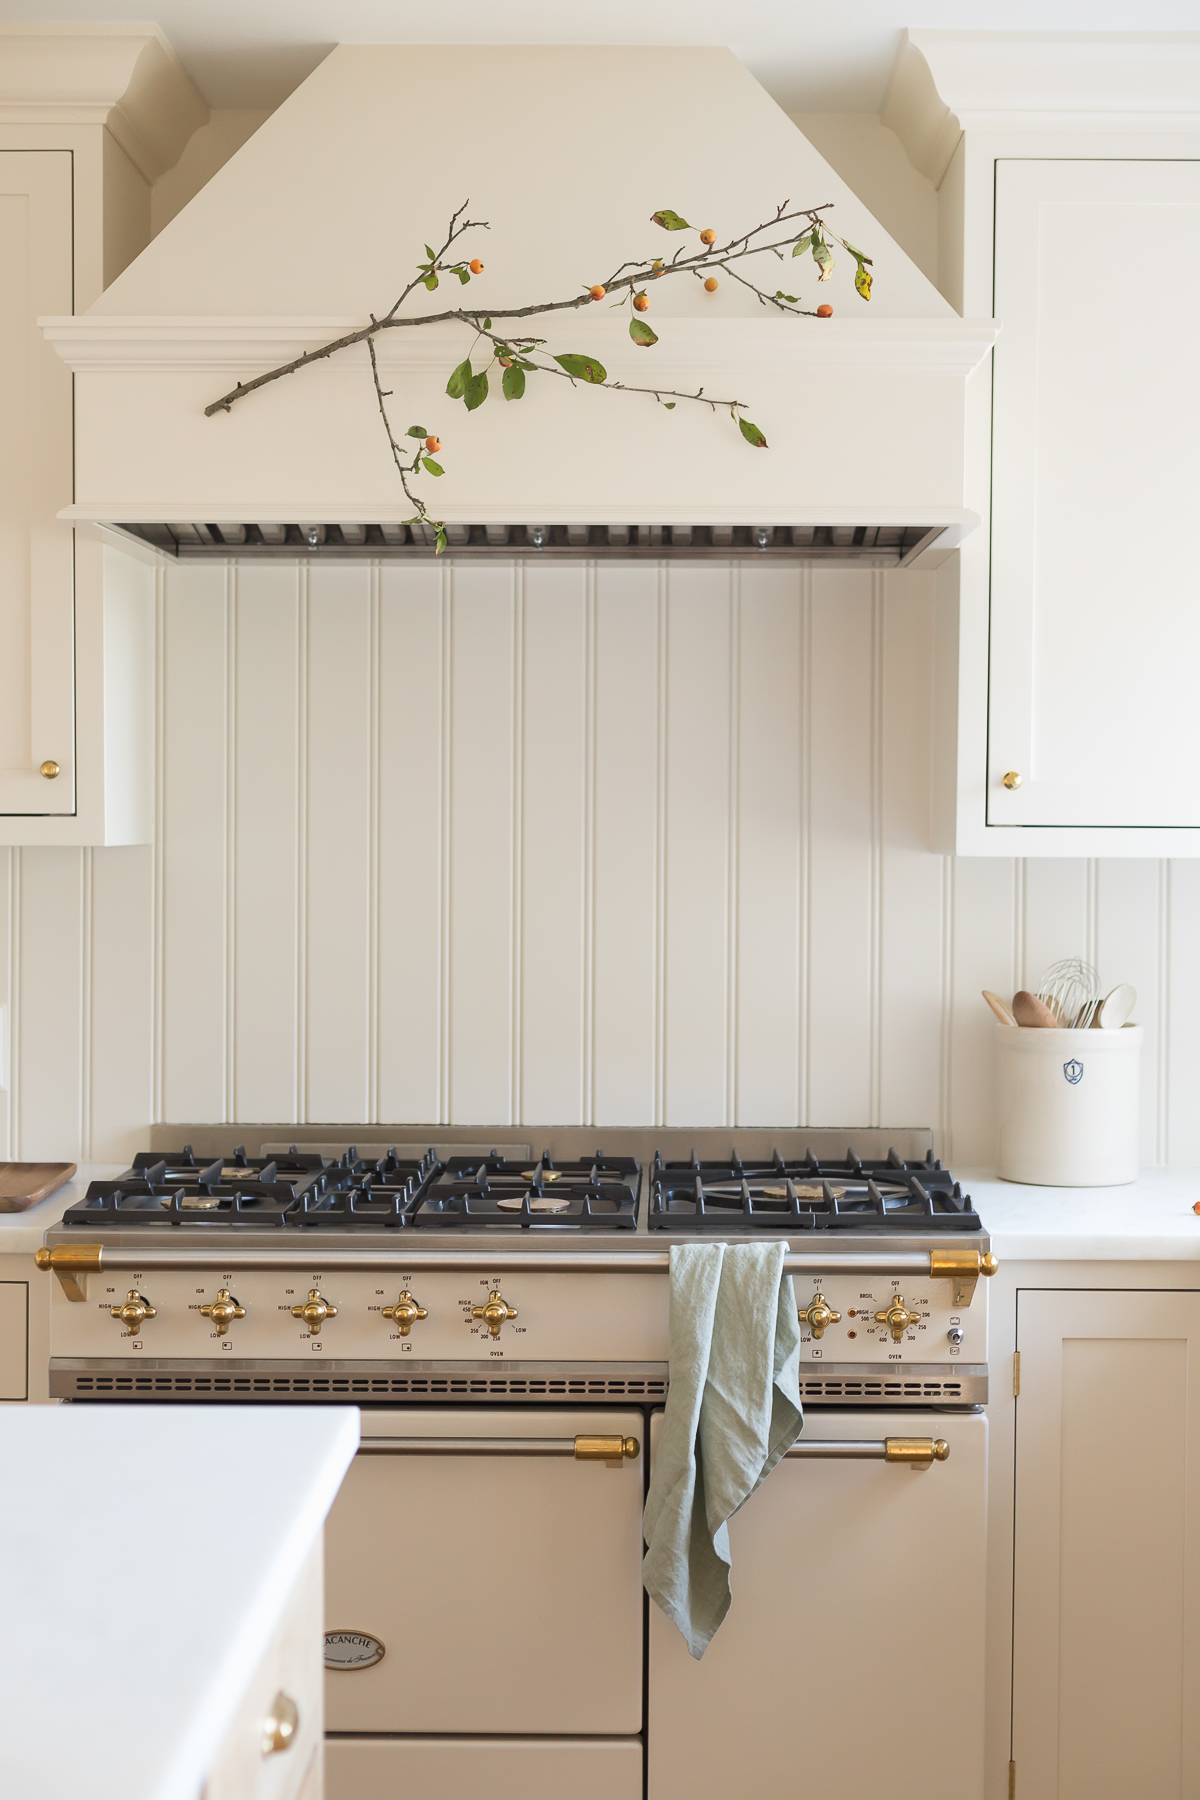 fall branch hanging over range in kitchen